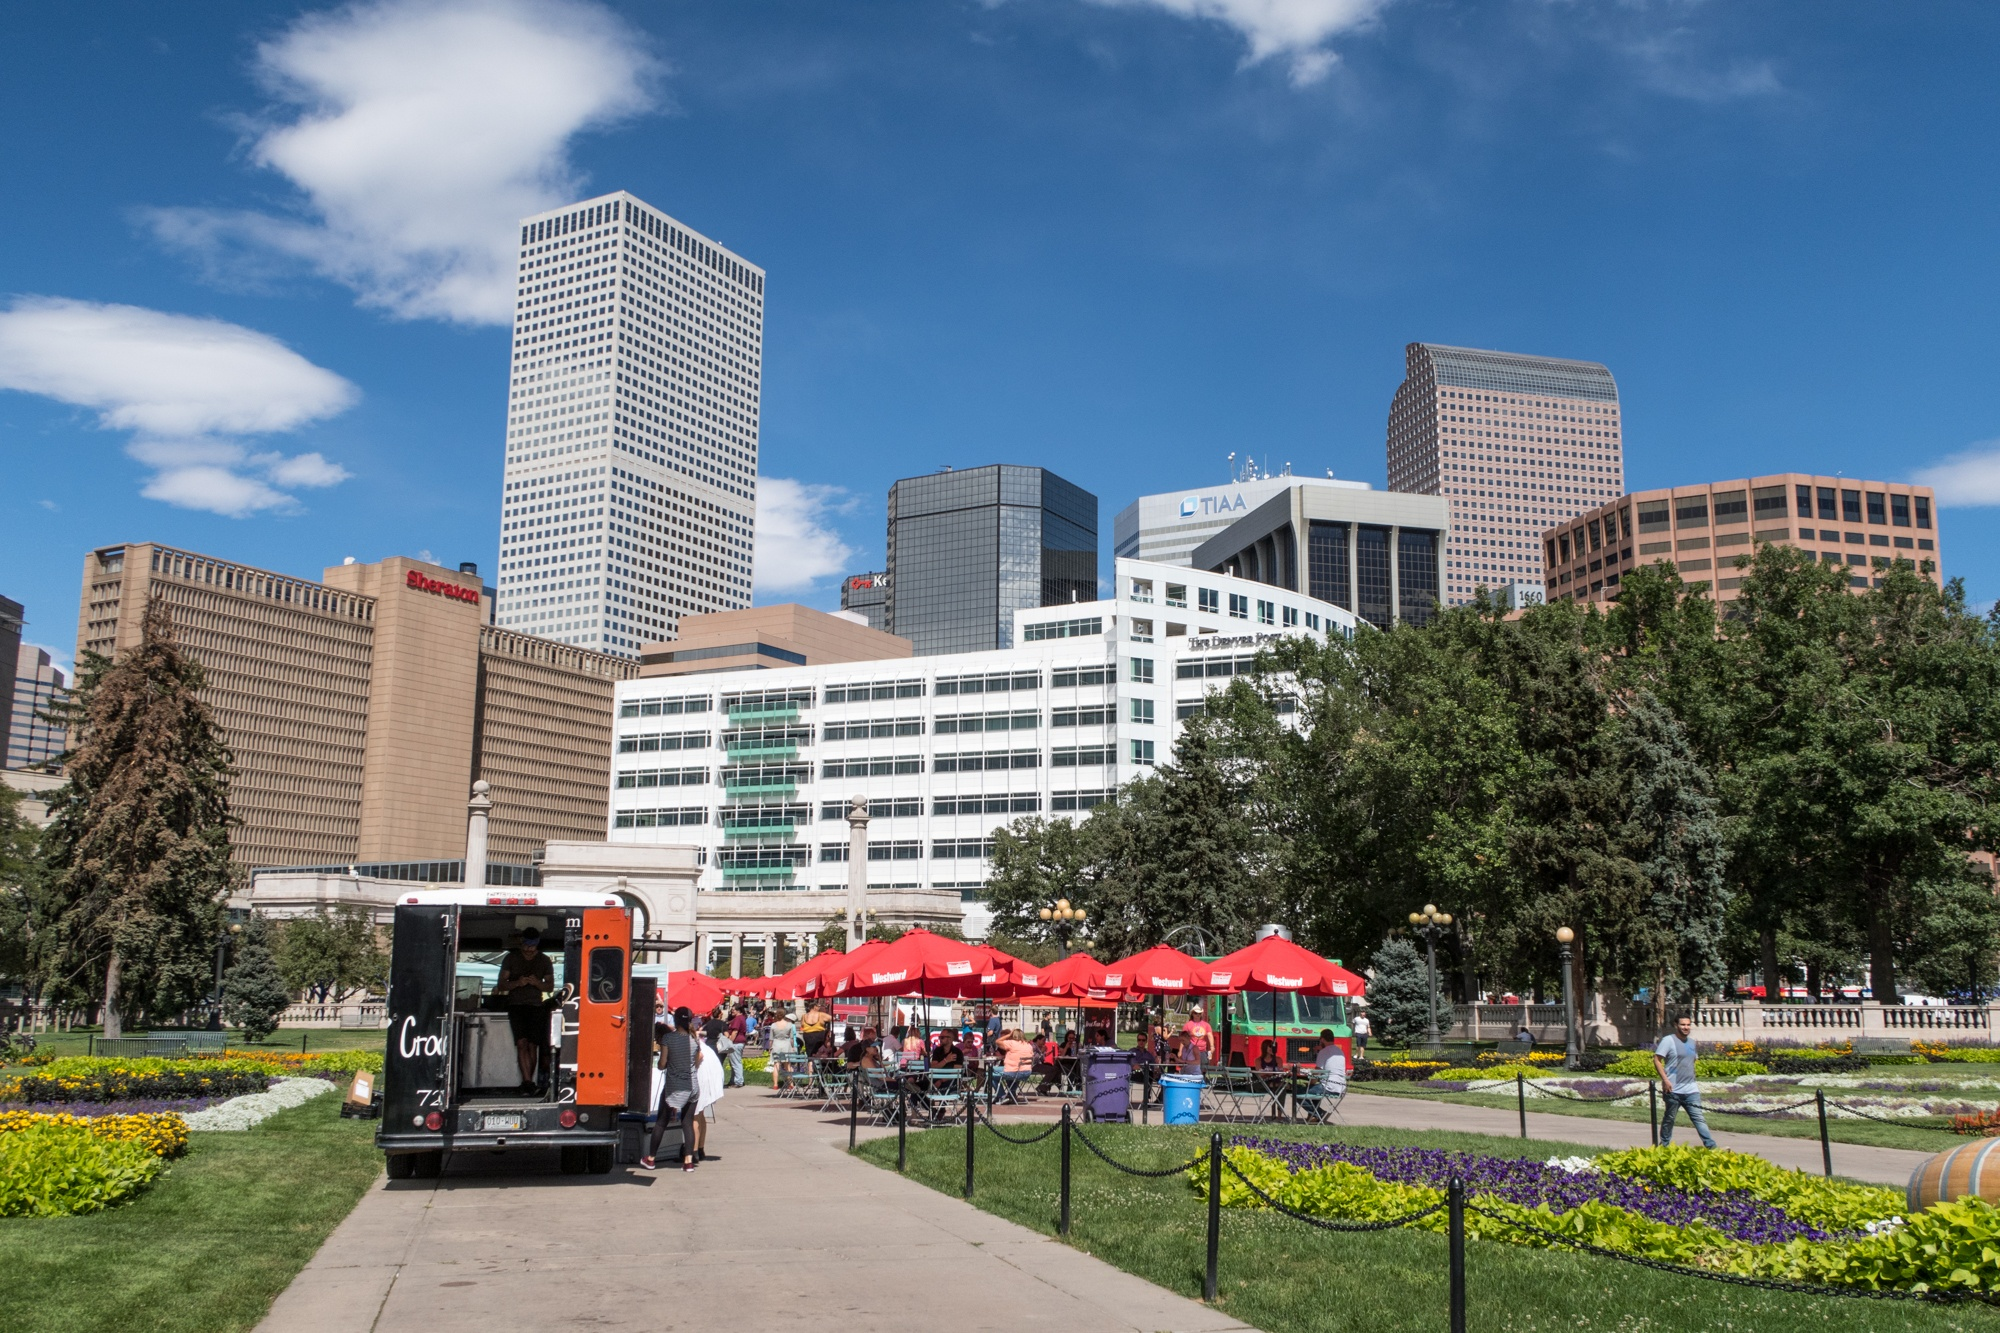 Food trucks at lunchtime in Civic Center Park